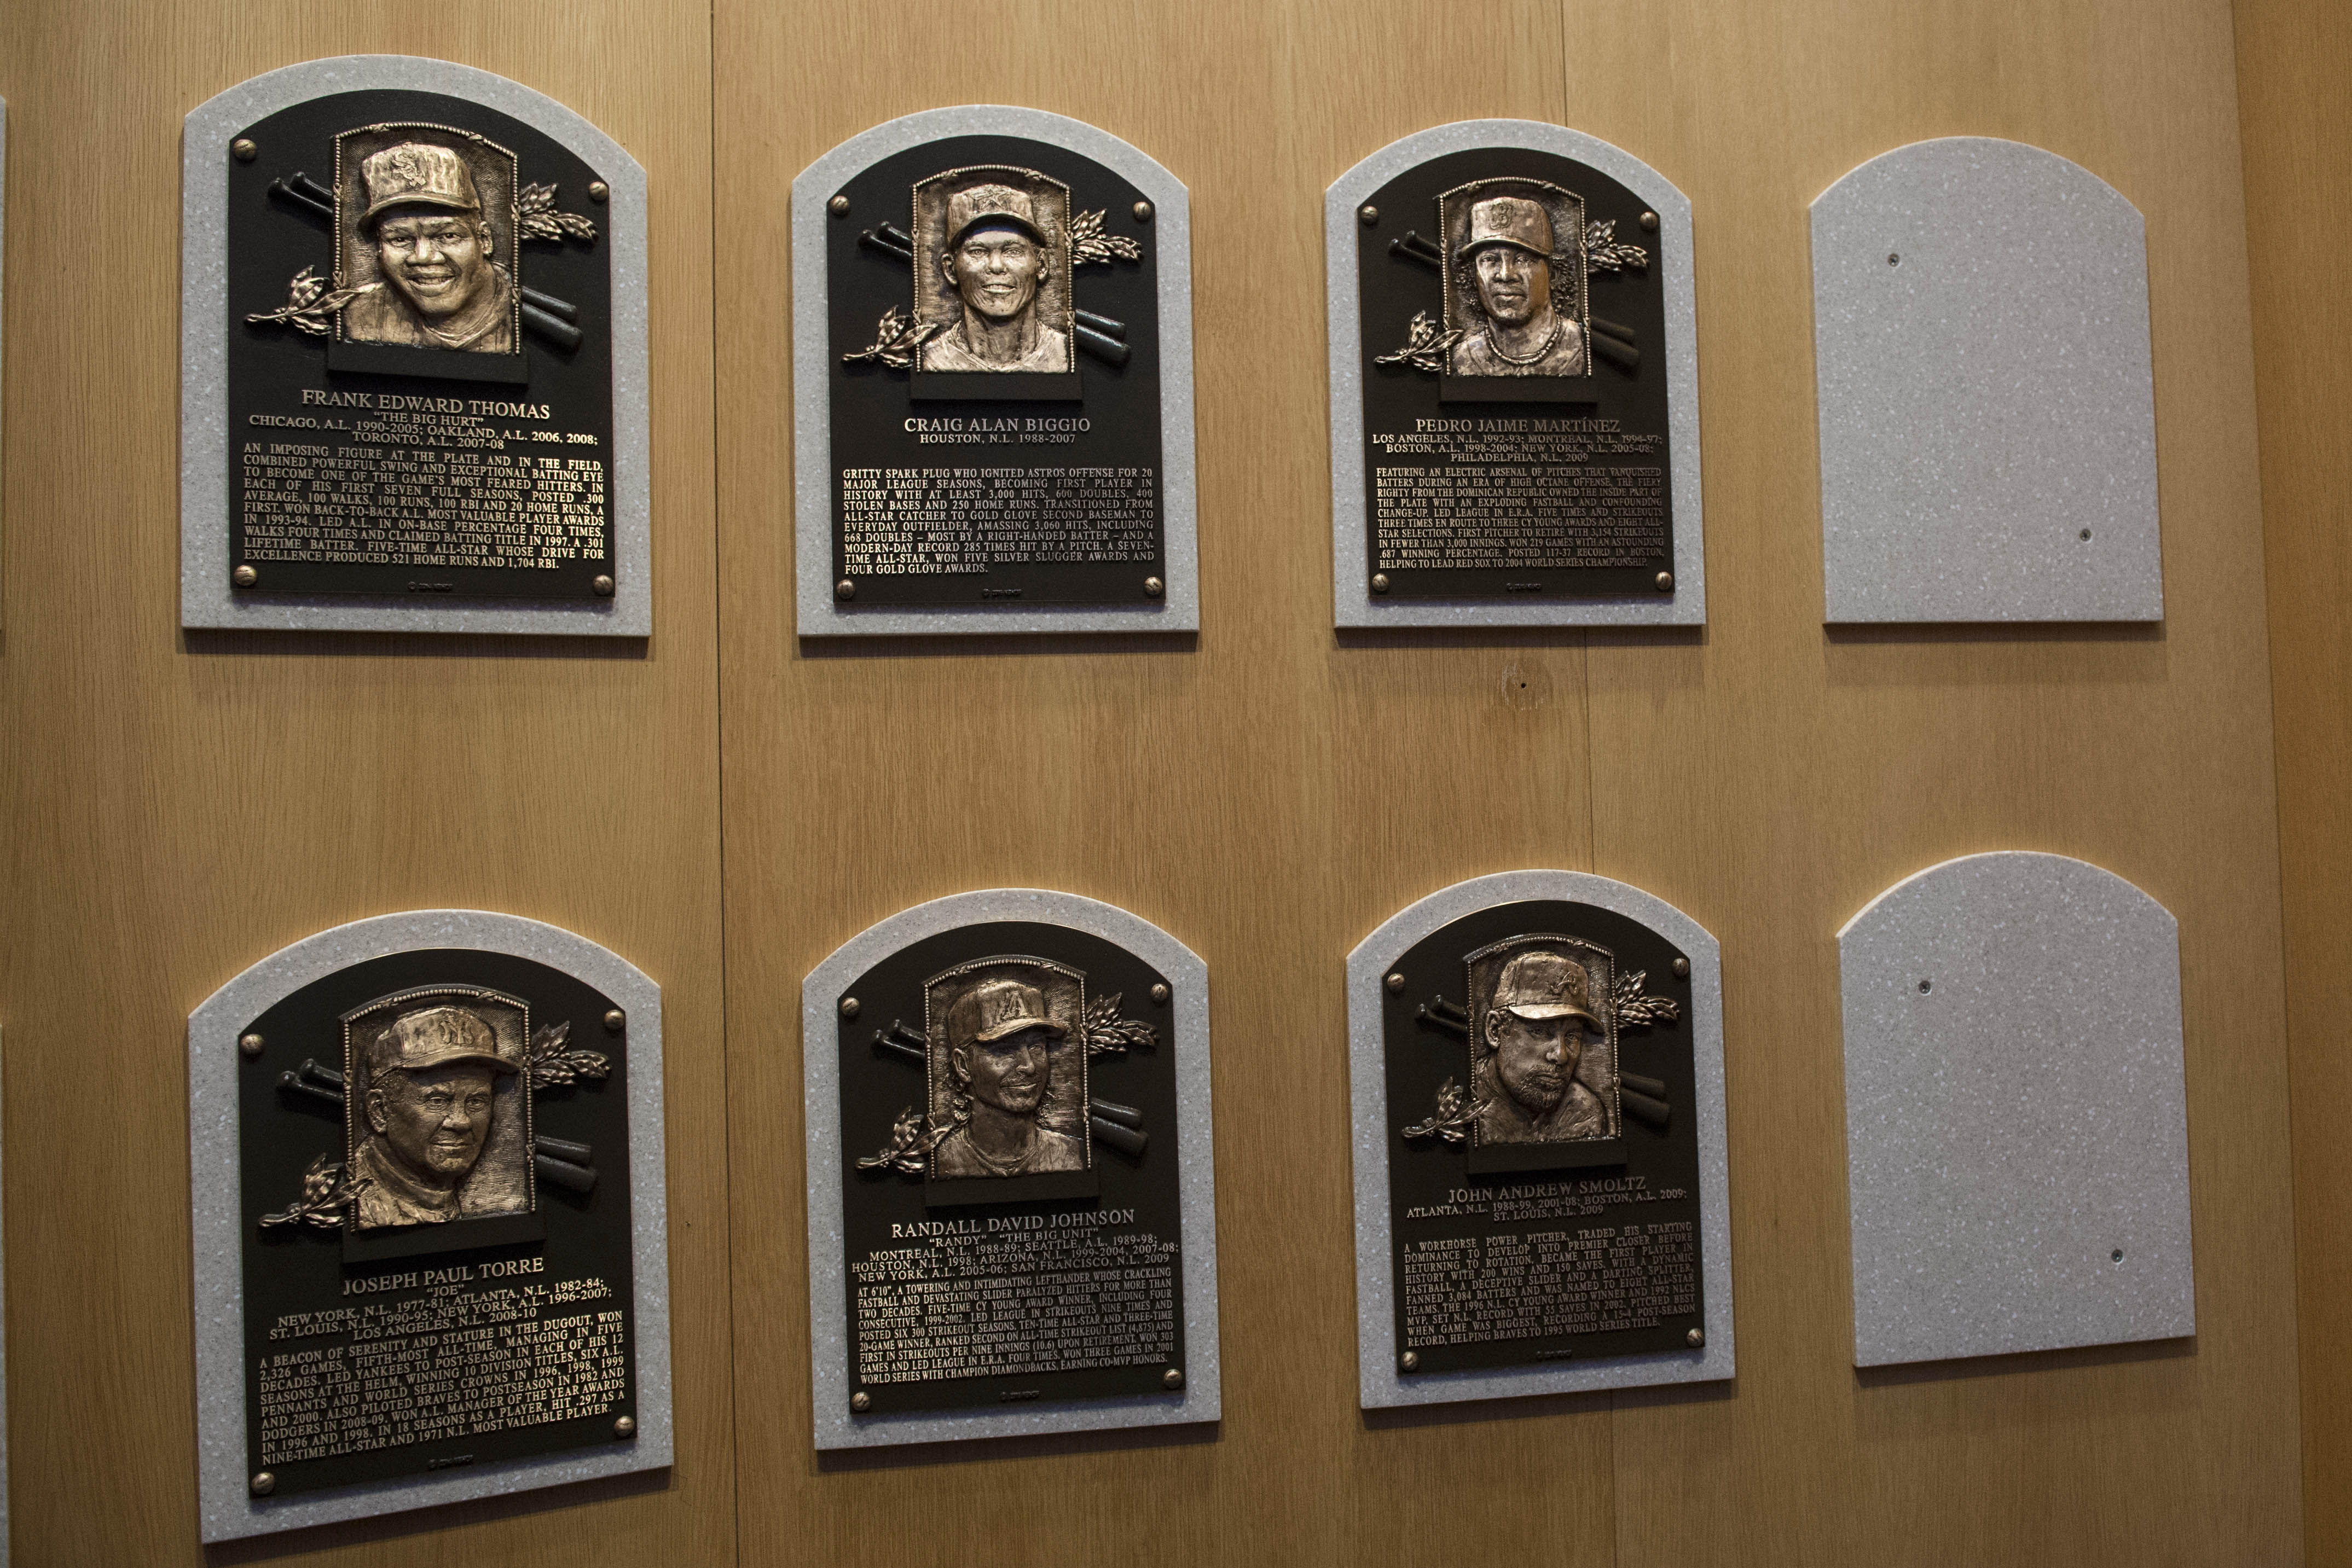 8720137-mlb-baseball-hall-of-fame-induction-ceremony